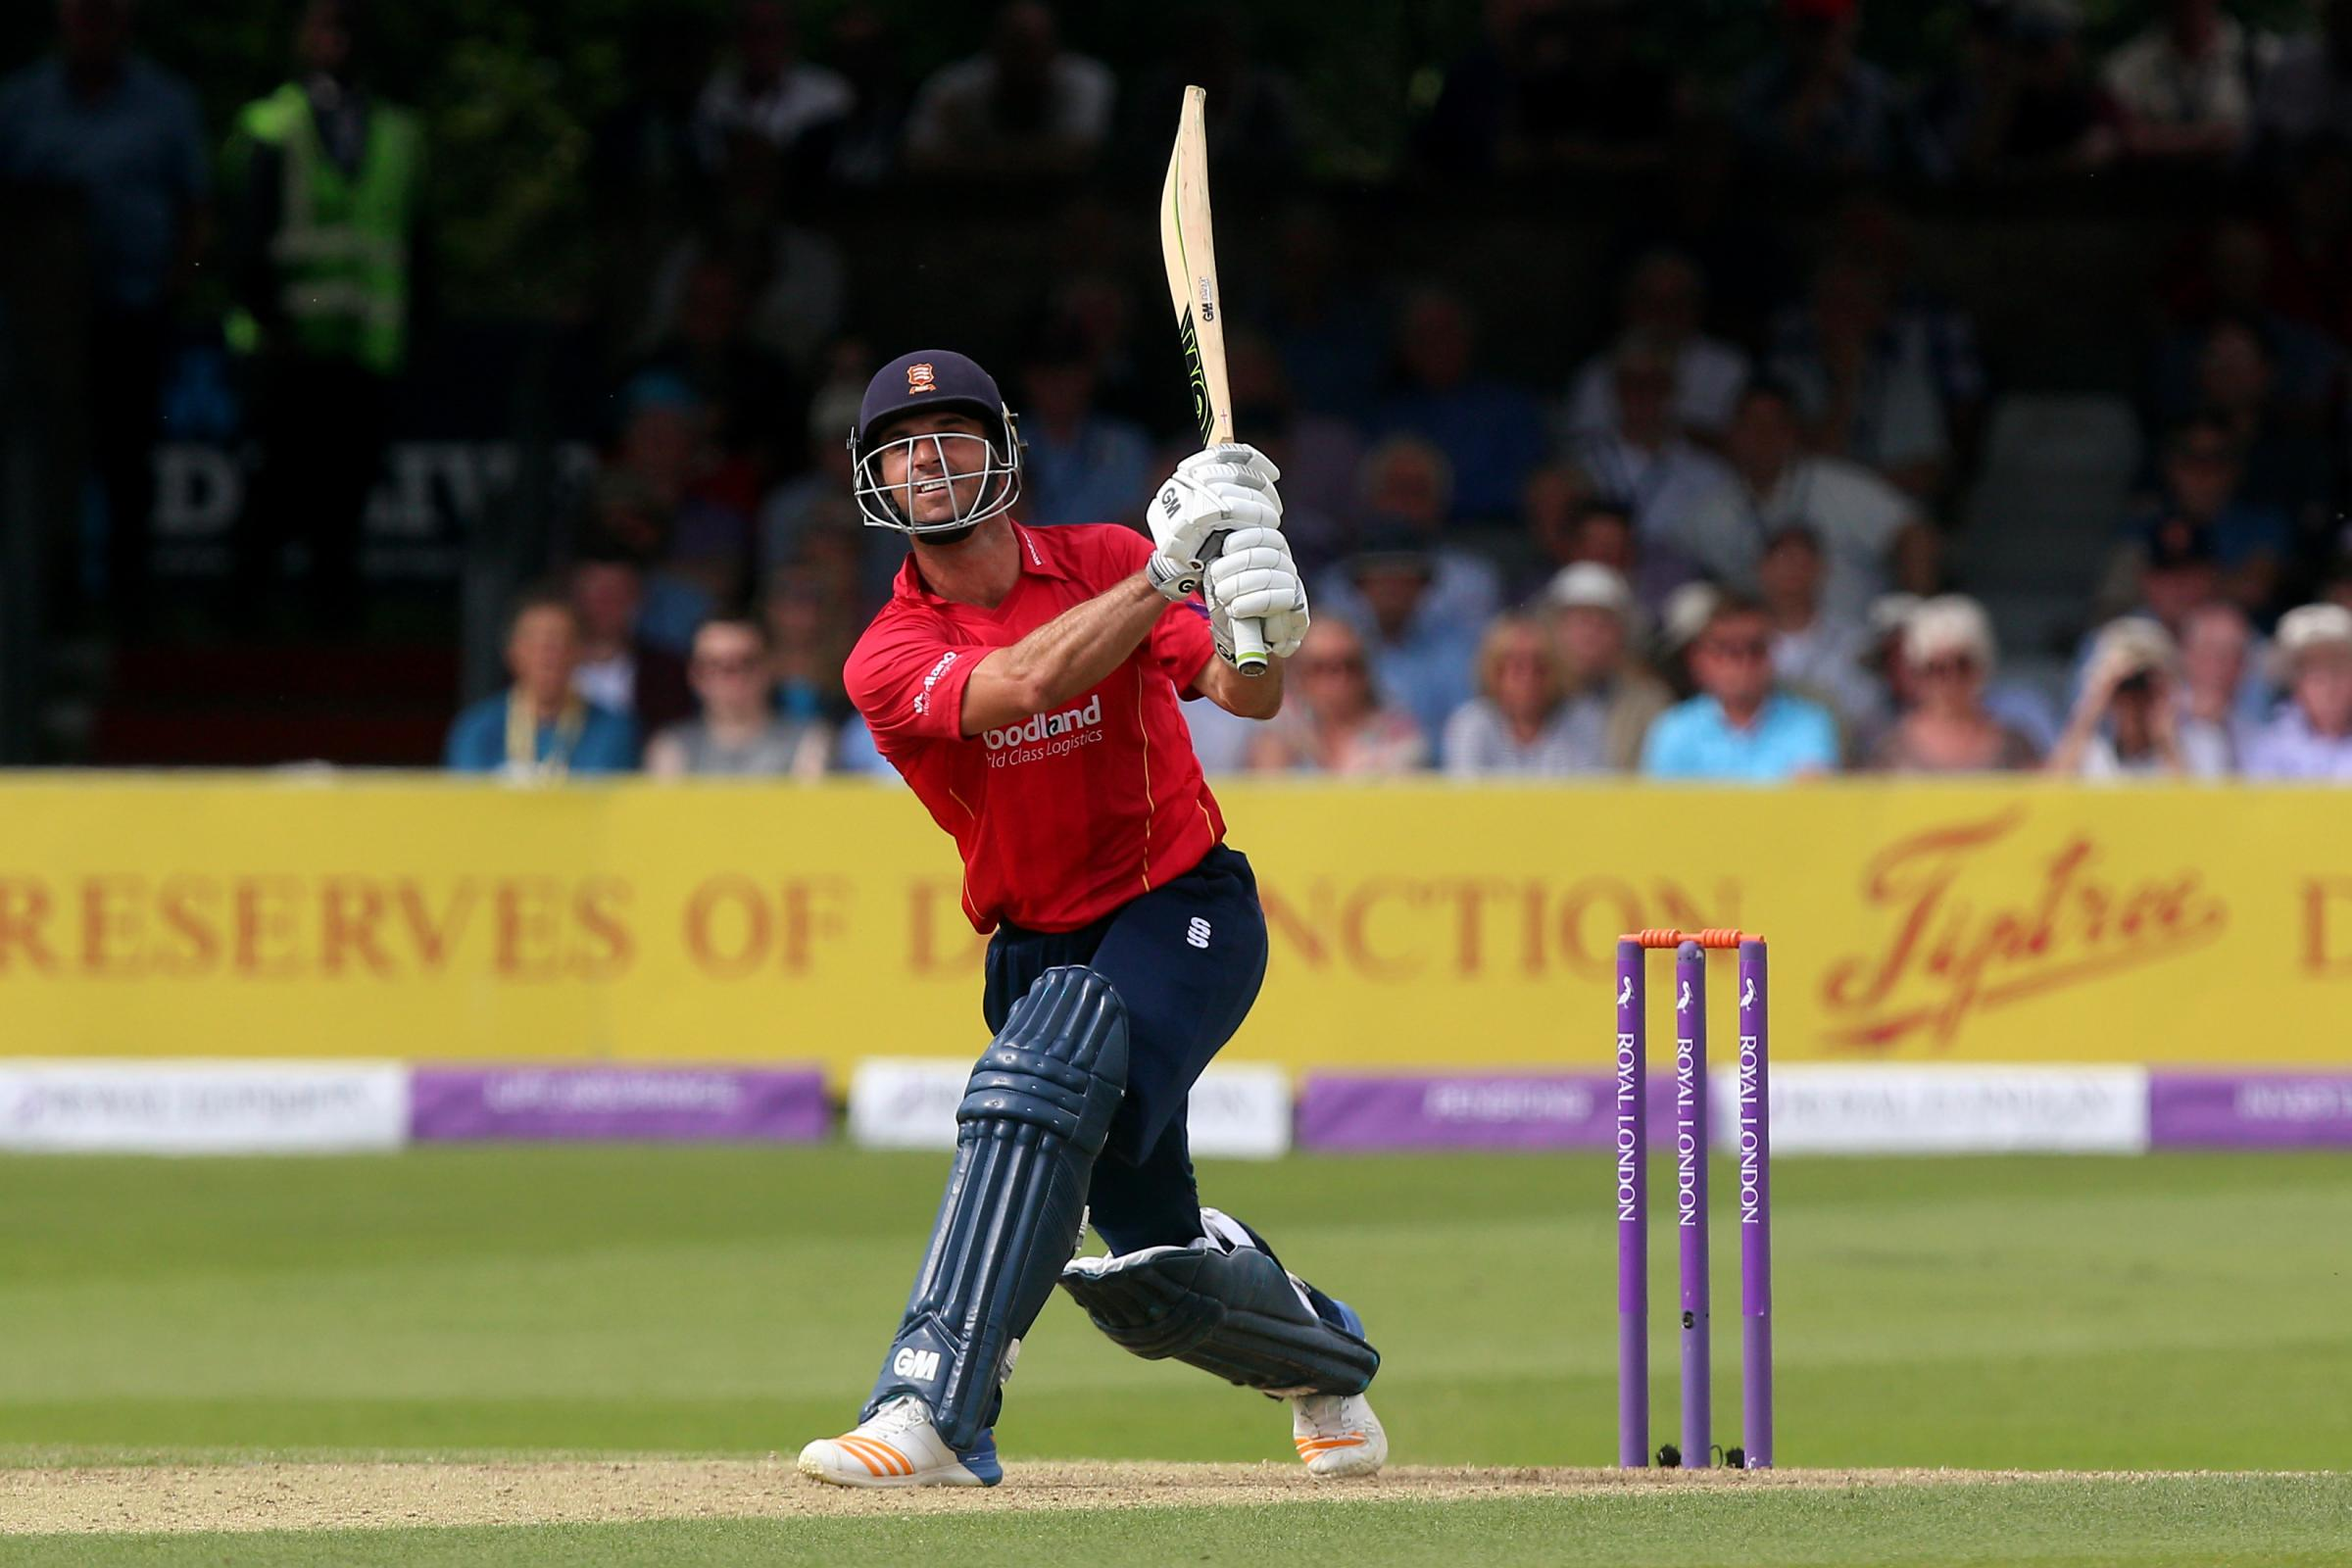 Essex captain Ryan ten Doeschate will miss the game with Yorkshire